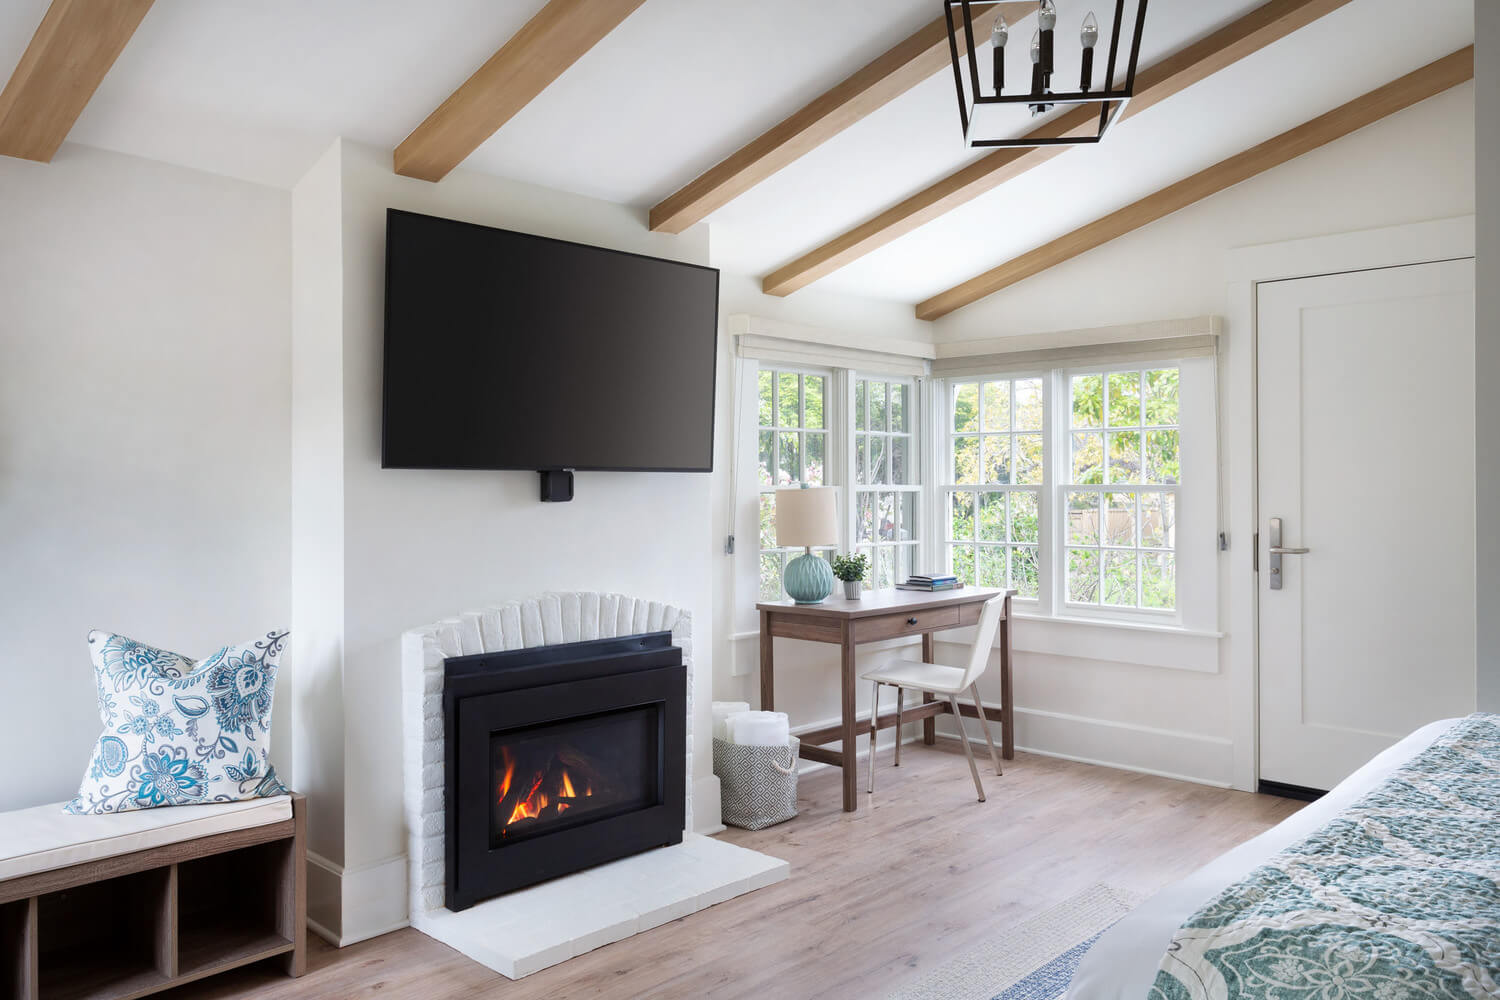 suite with desk, tv and fireplace and decorative floral pillow